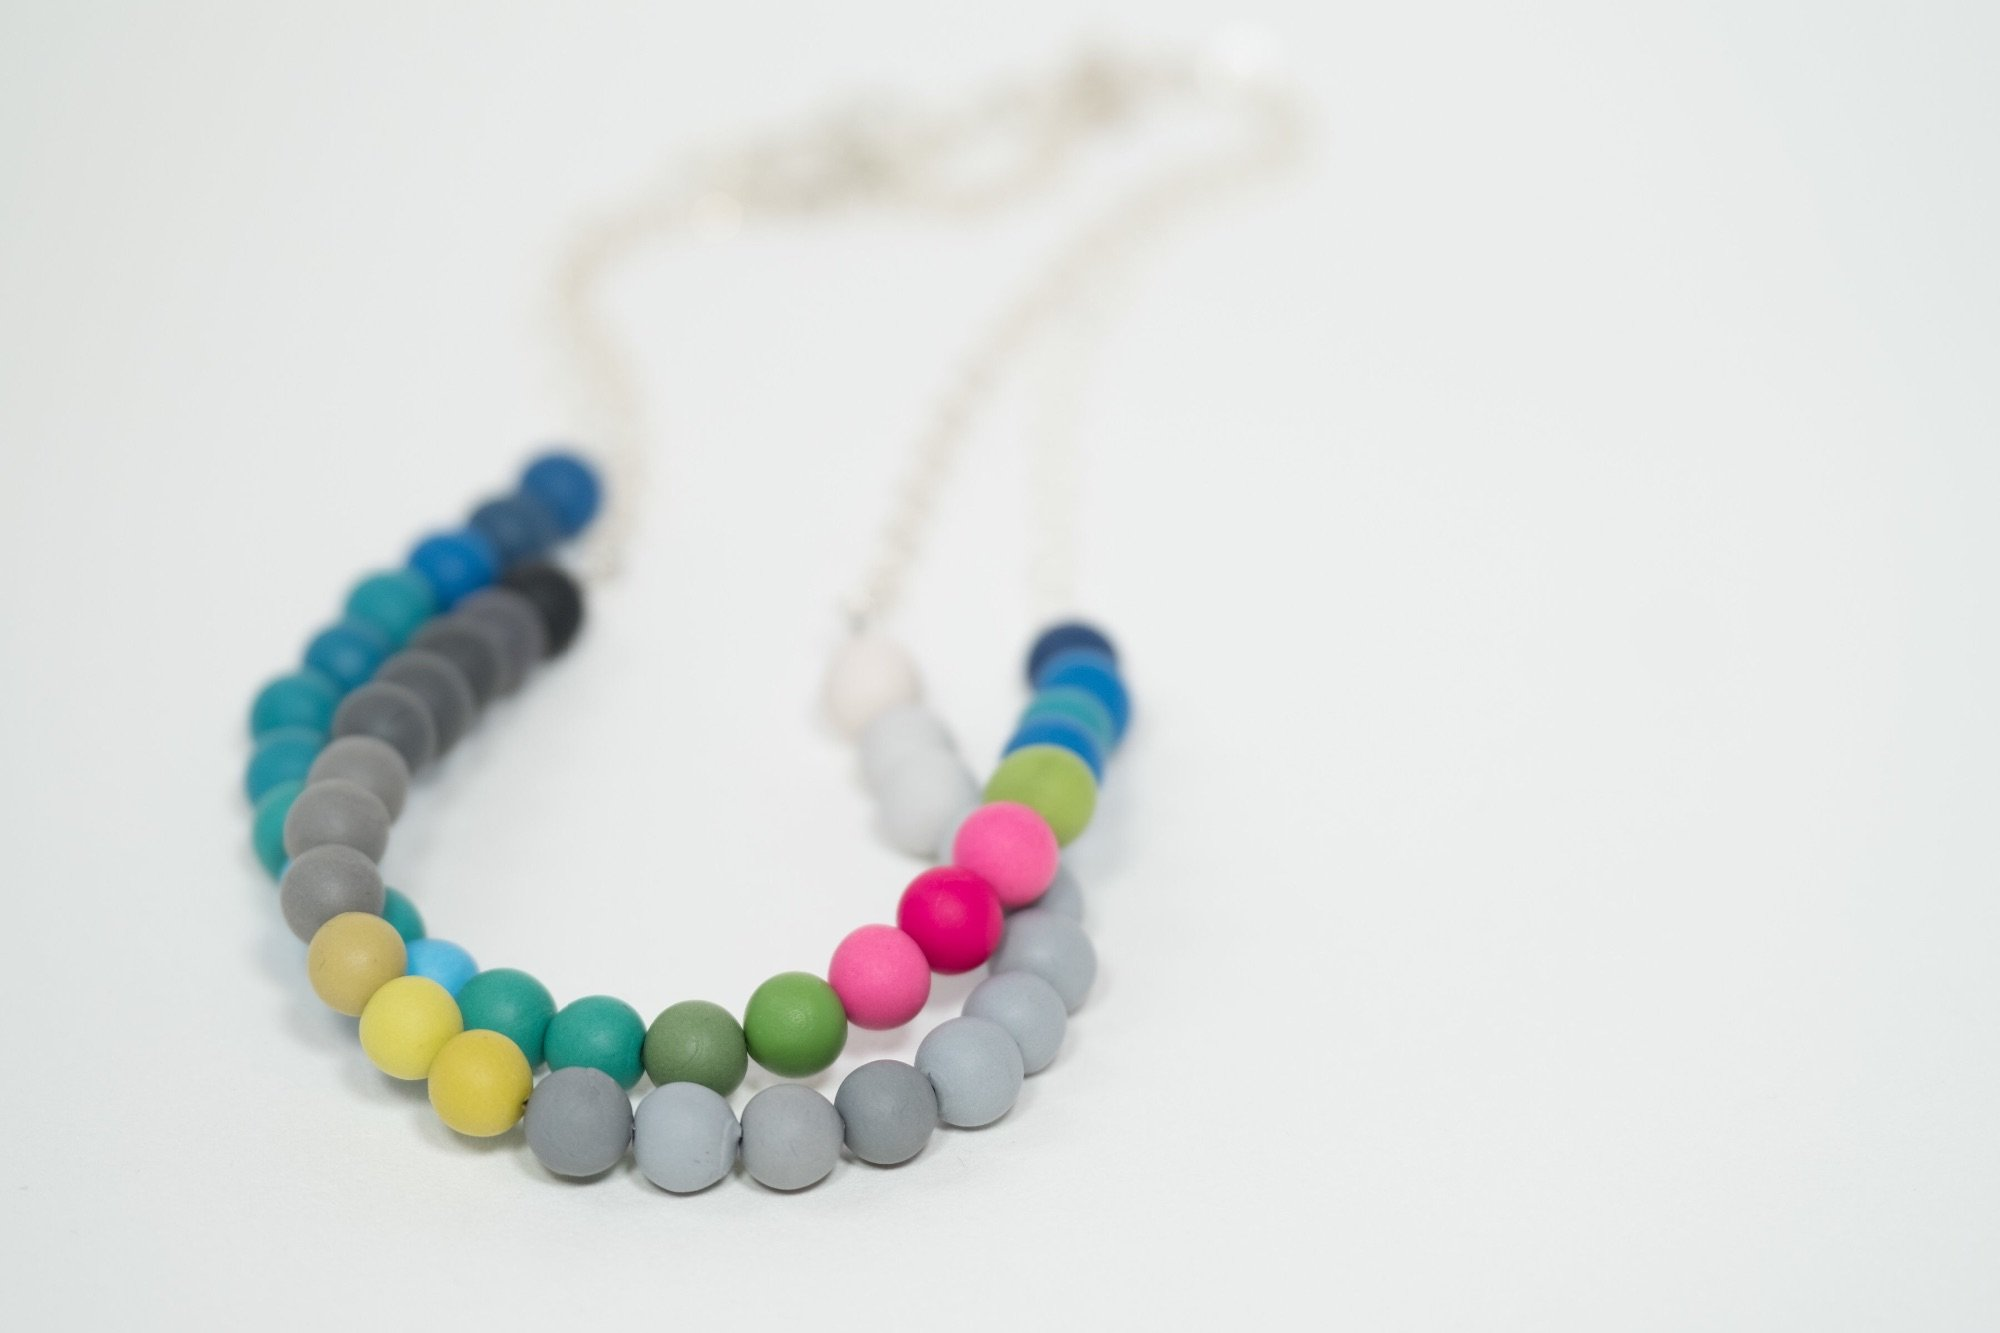 Handmade beaded polymer clay and sterling silver necklace by Colour Designs Jewellery